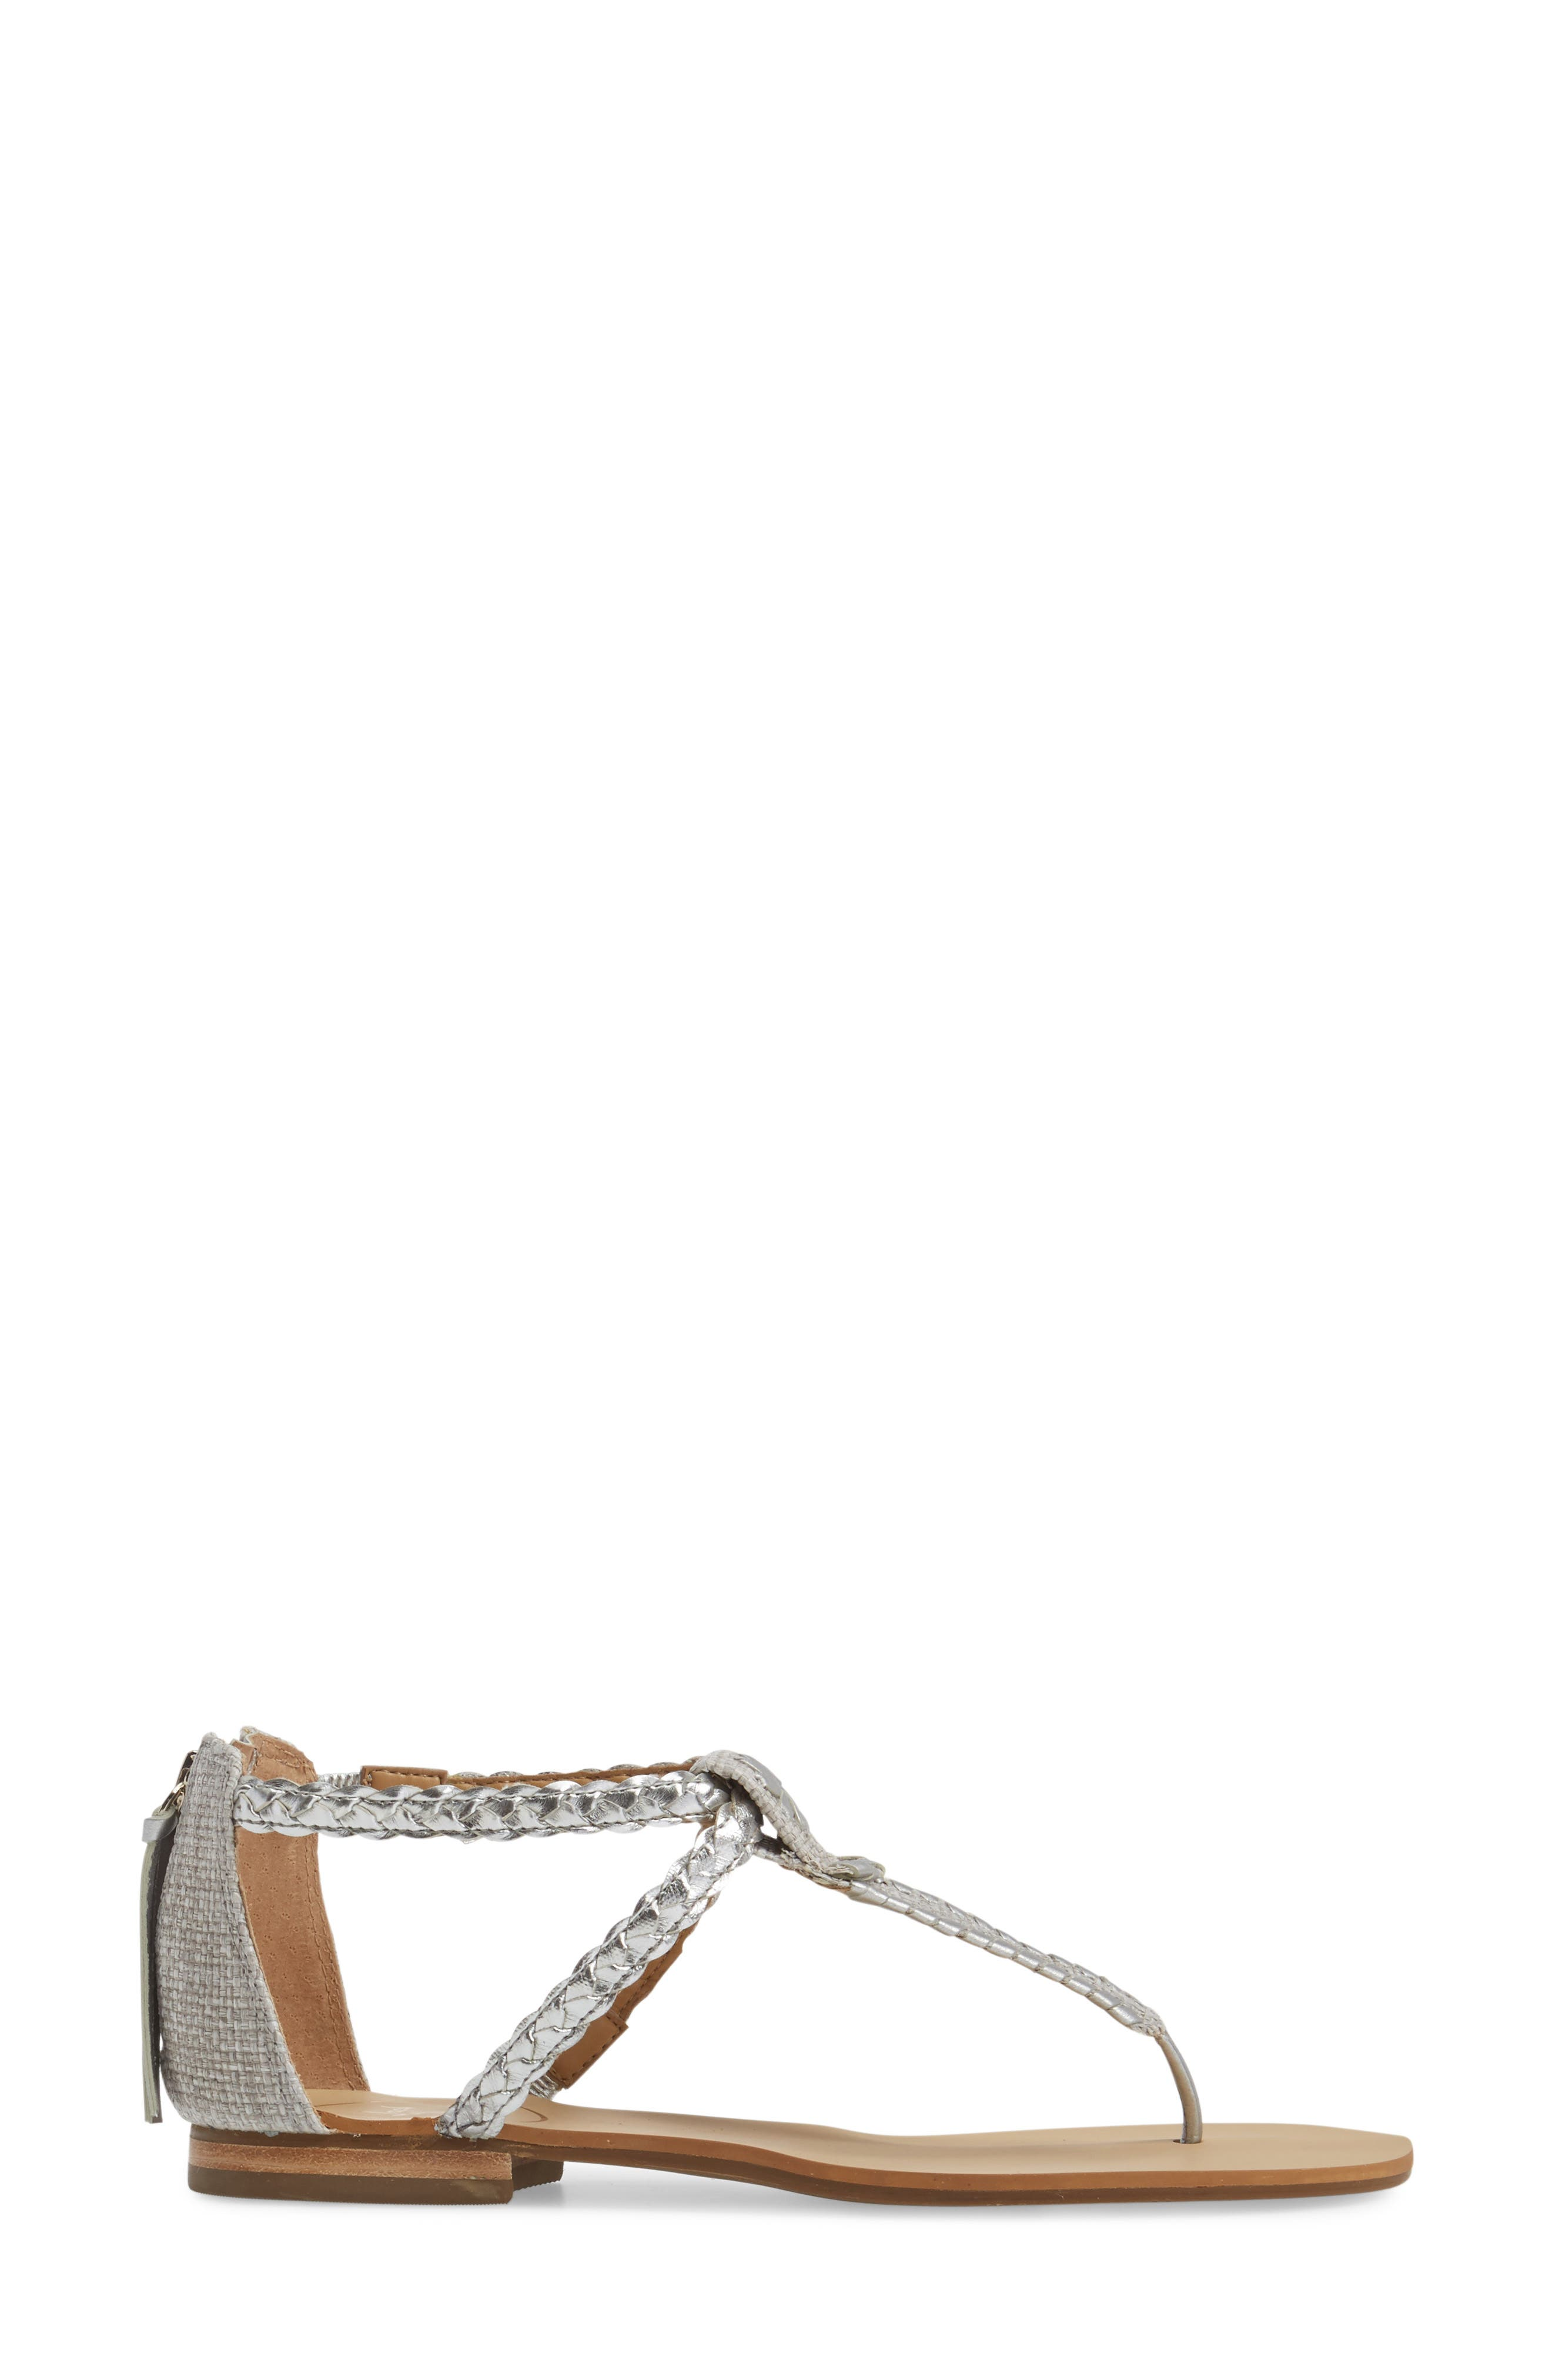 Alternate Image 3  - Jack Rogers Jenna Sandal (Women)